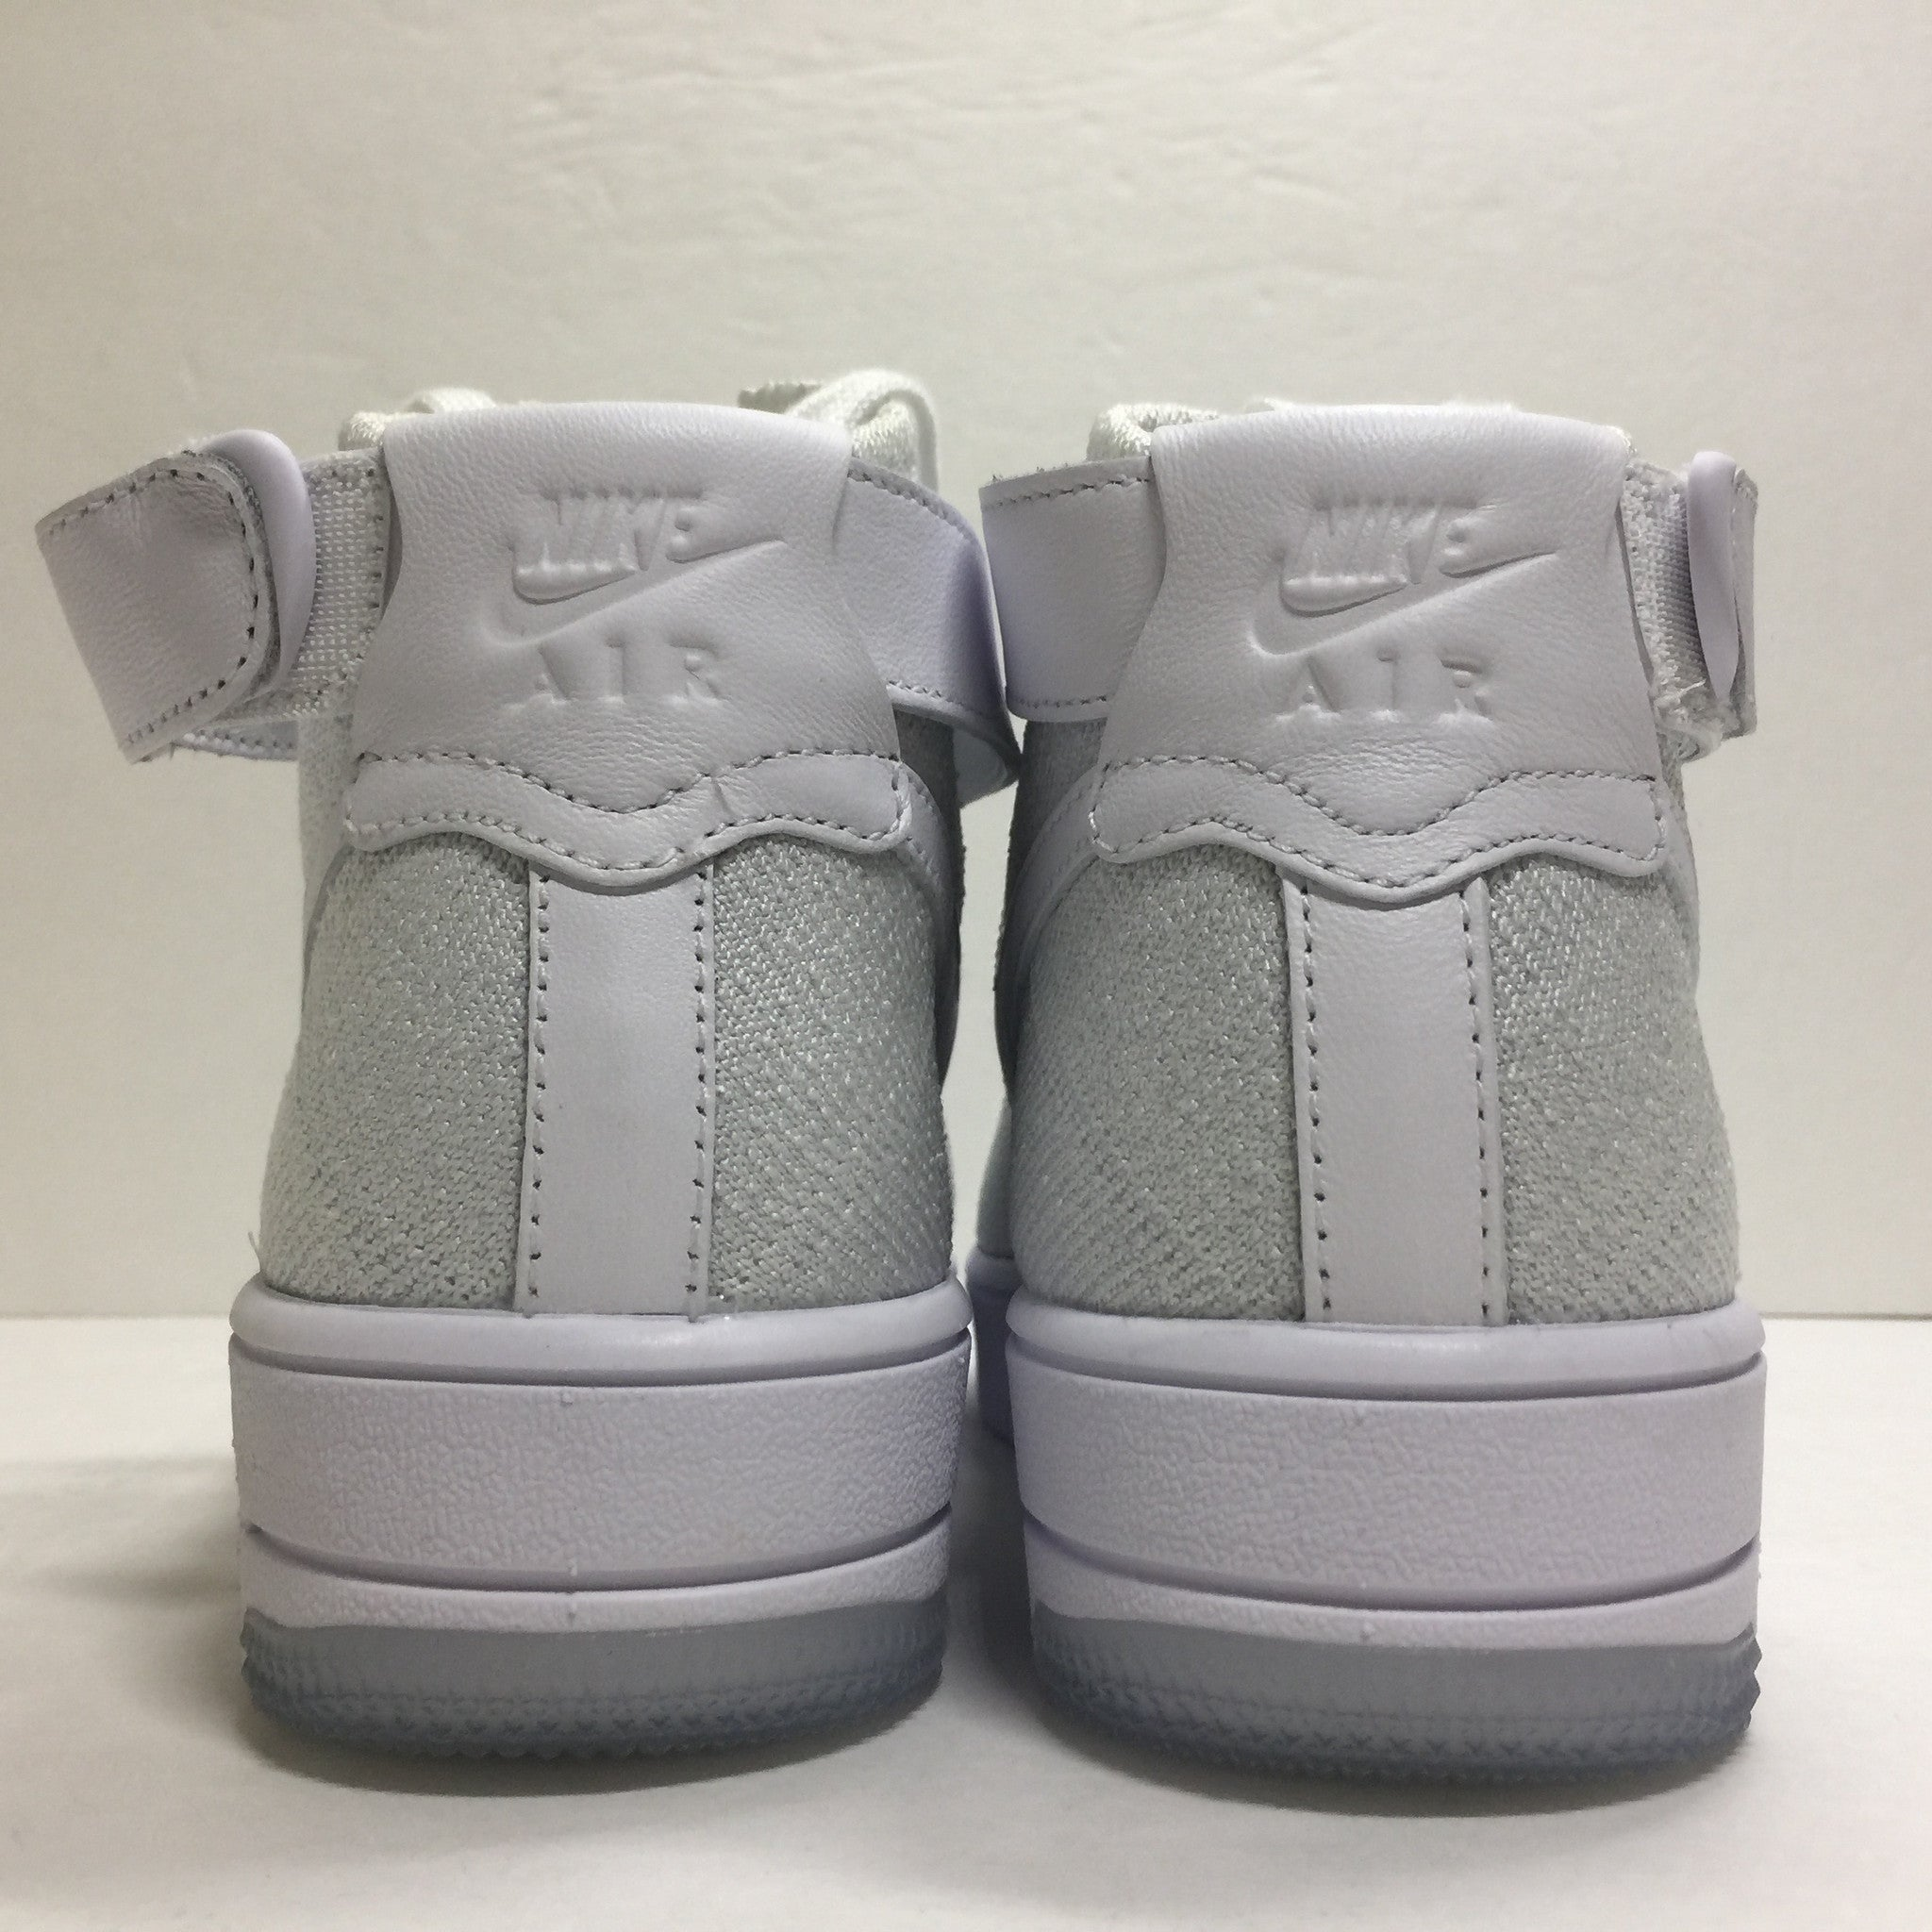 DS W Nike Air Force 1 Flyknit High White Size 6/6.5/Size 7.5 - DOPEFOOT  - 8